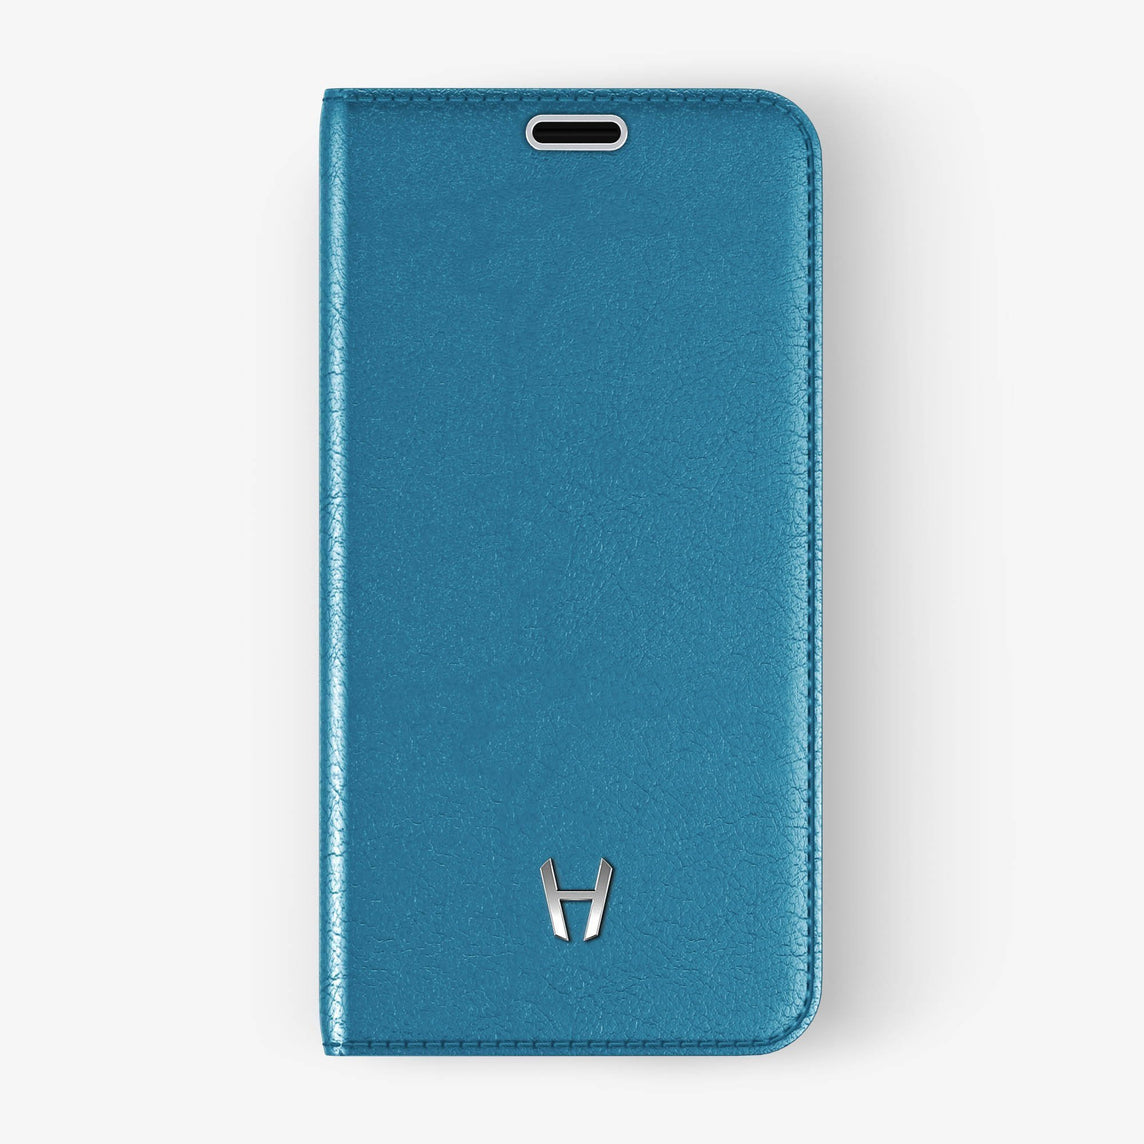 Calfskin Folio Case iPhone Xs Max | Peony Blue - Stainless Steel without-personalization